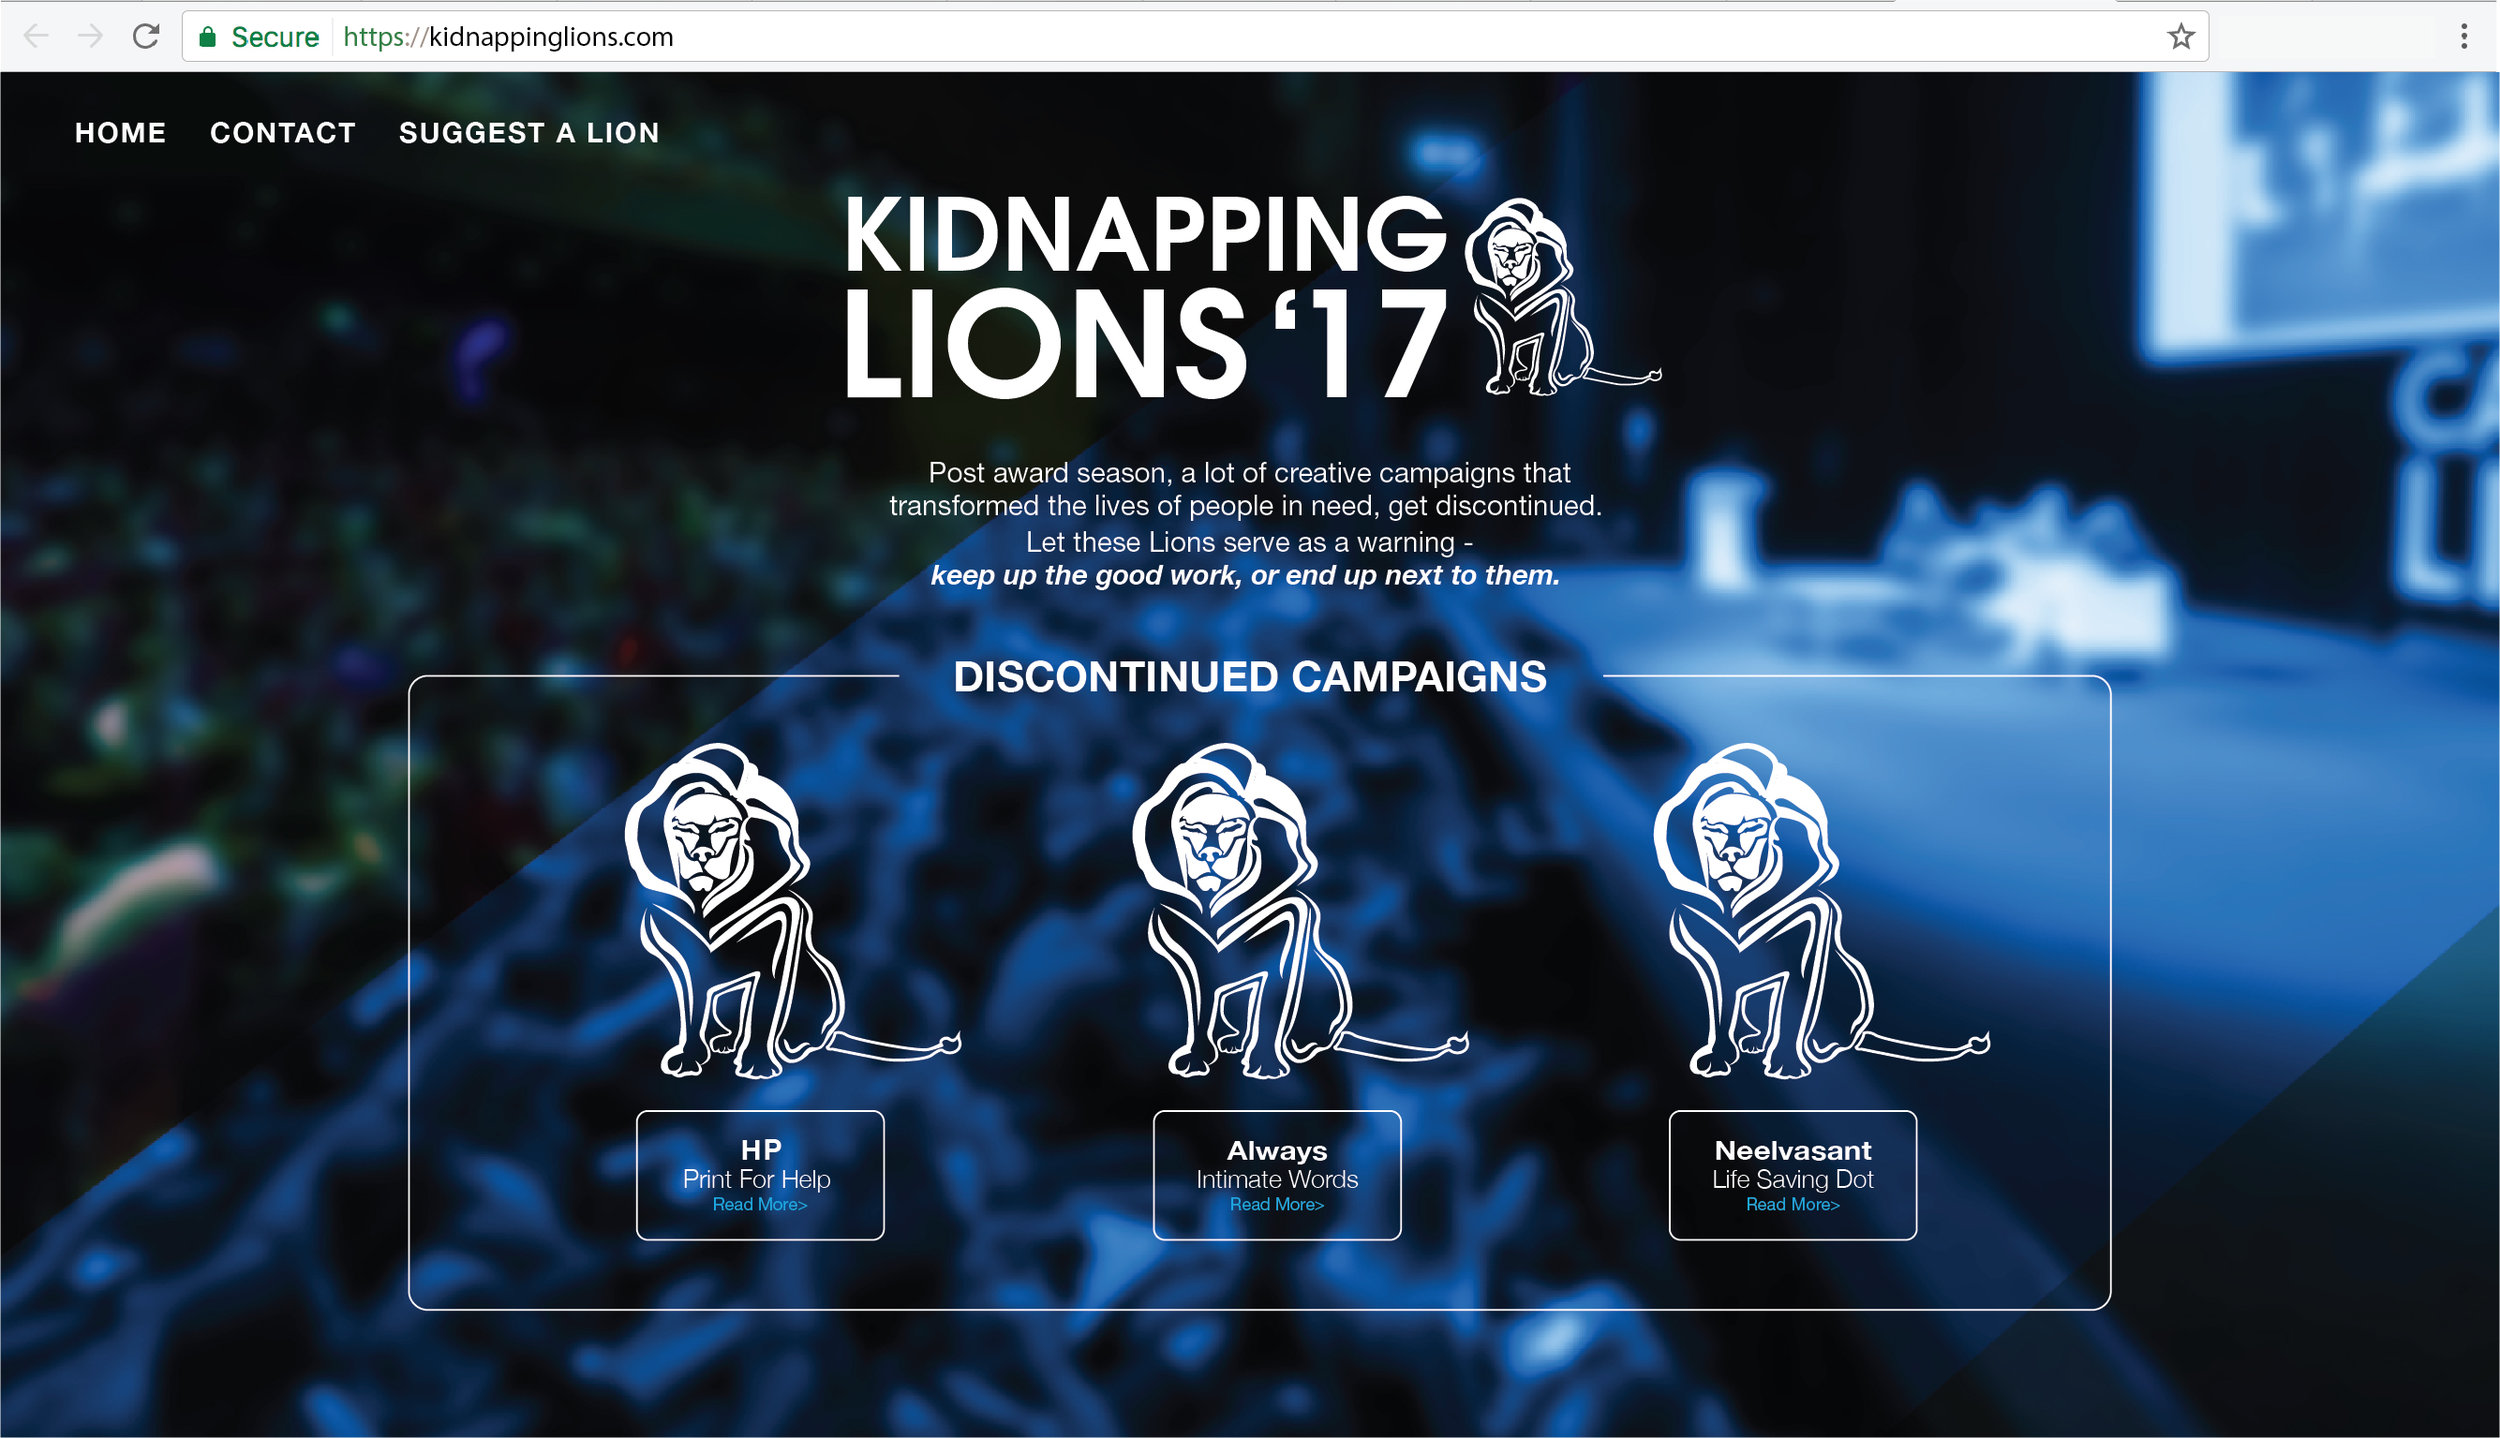 kidnappinglions_microsite_new-01.jpg